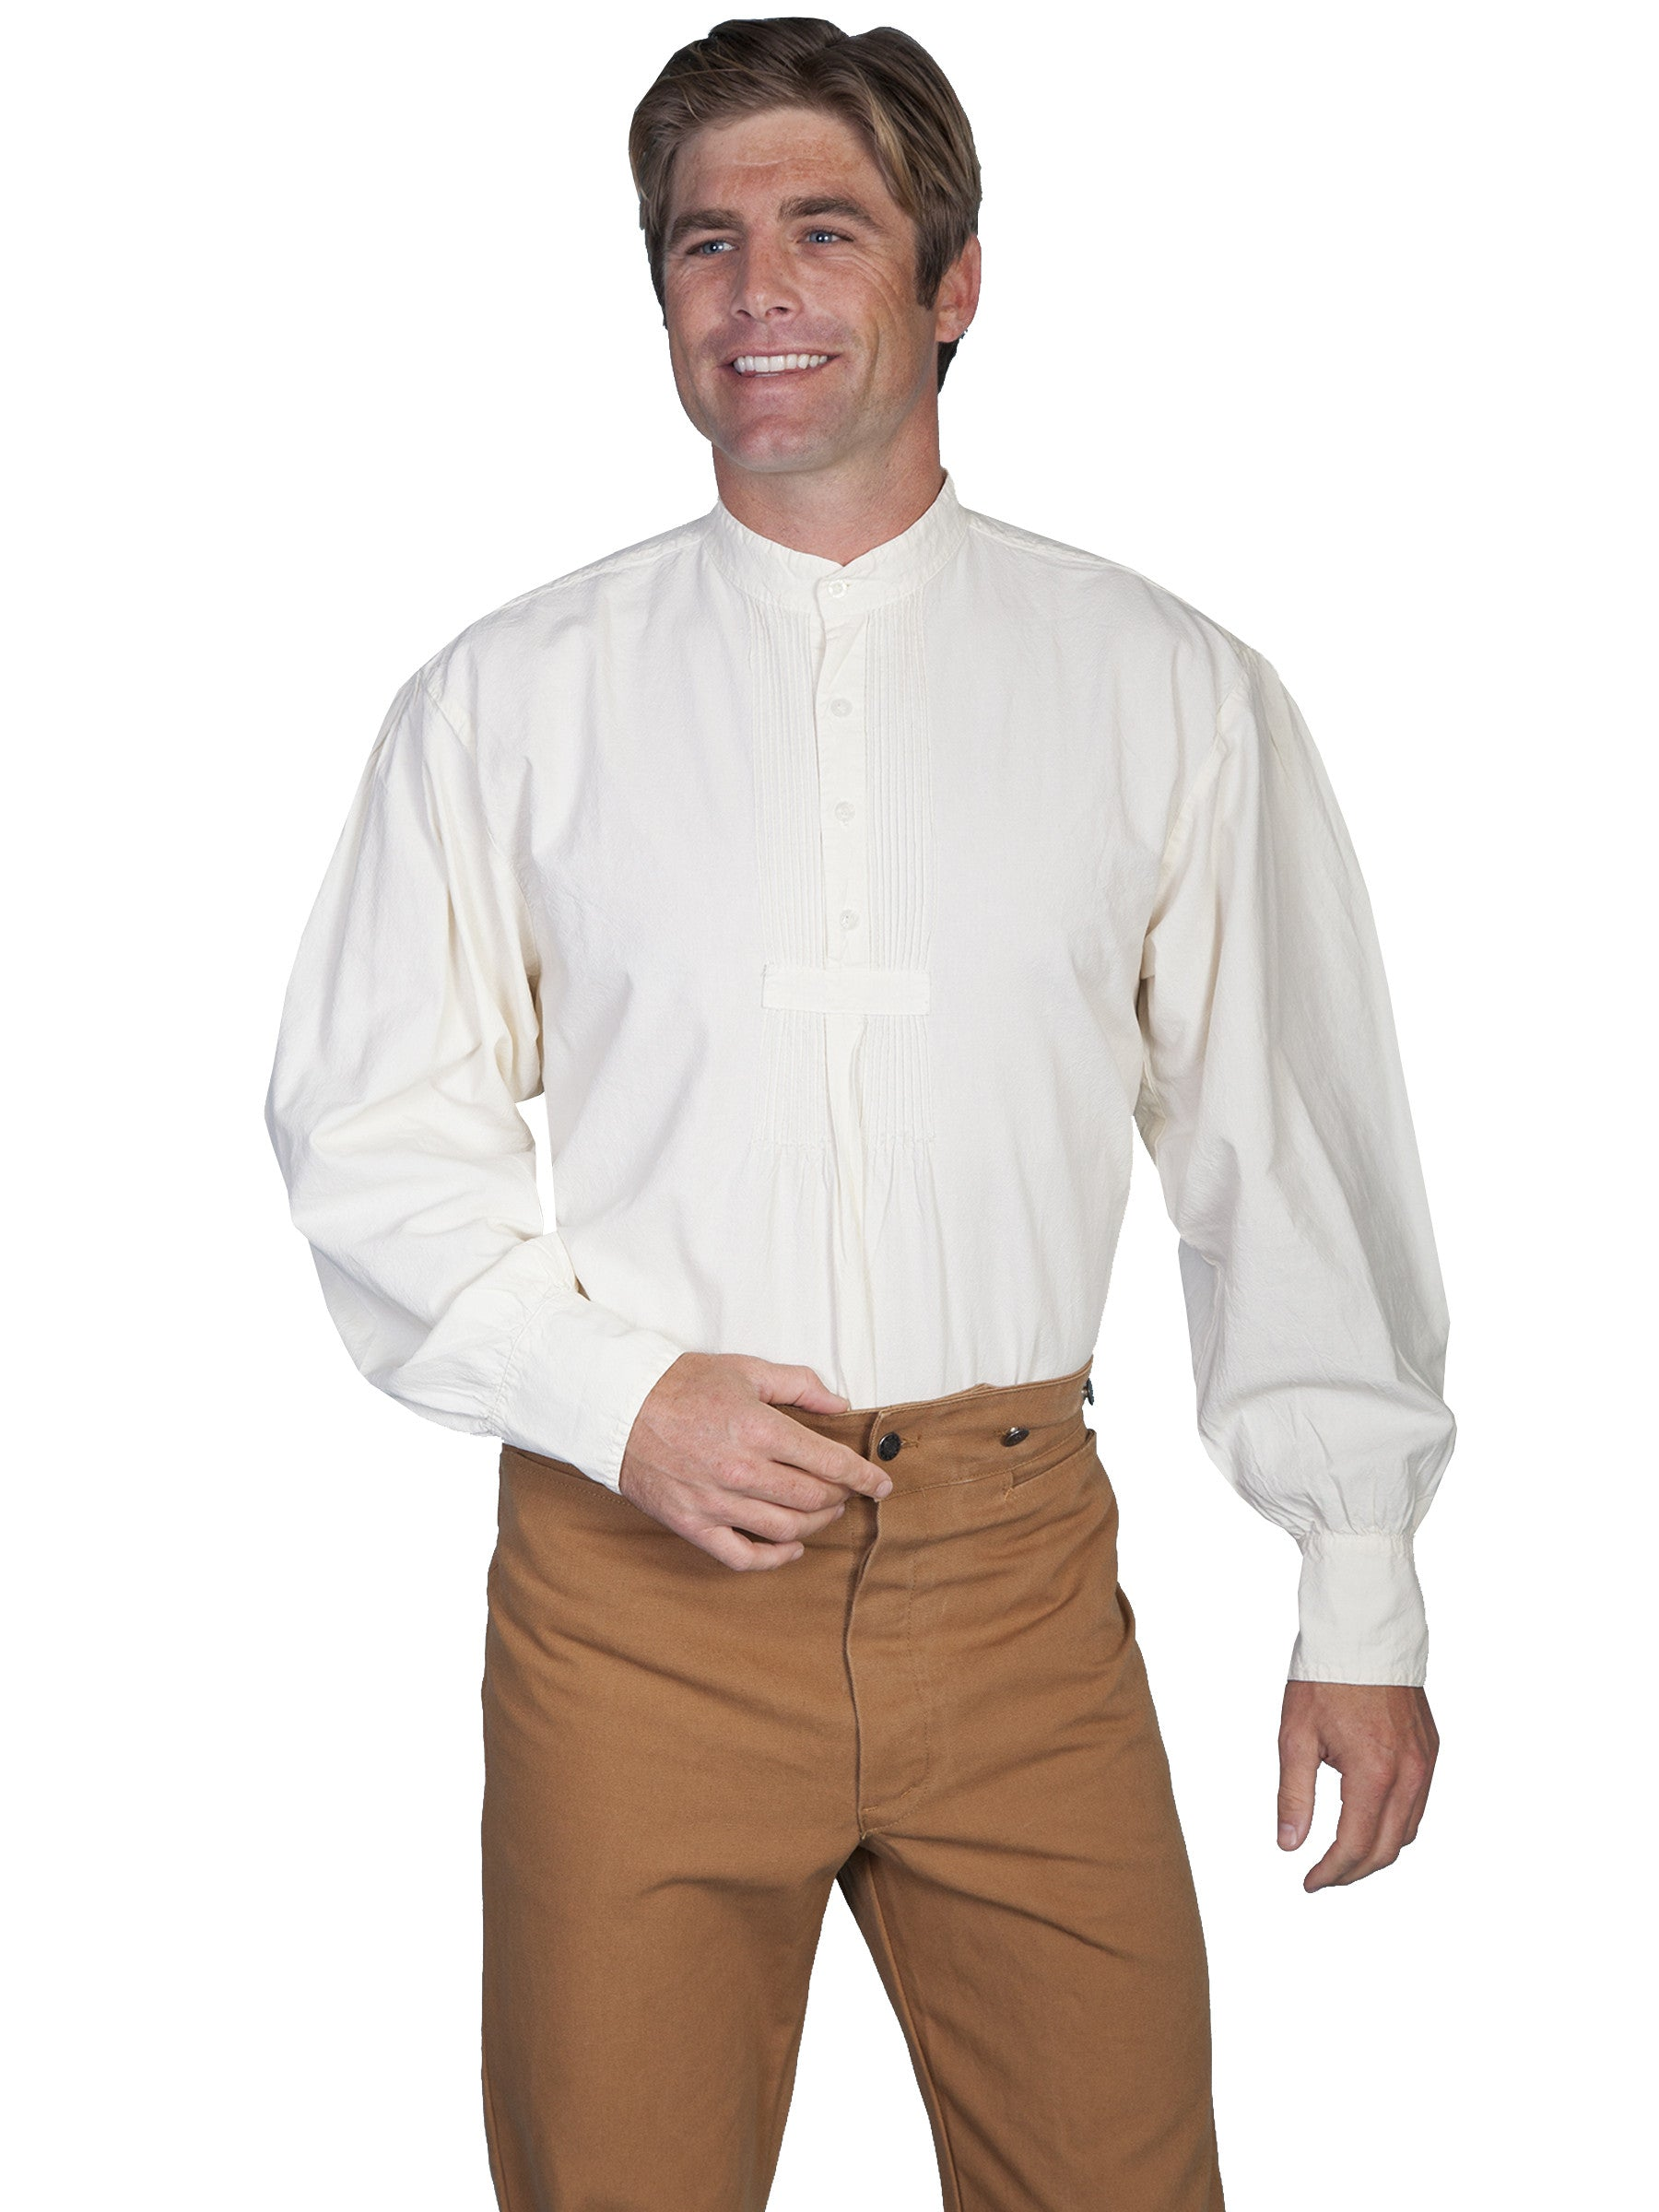 955322d5a1c ... Scully Mens Rangewear Old West Shirt Bib Front with Pleats Natural  Front ...